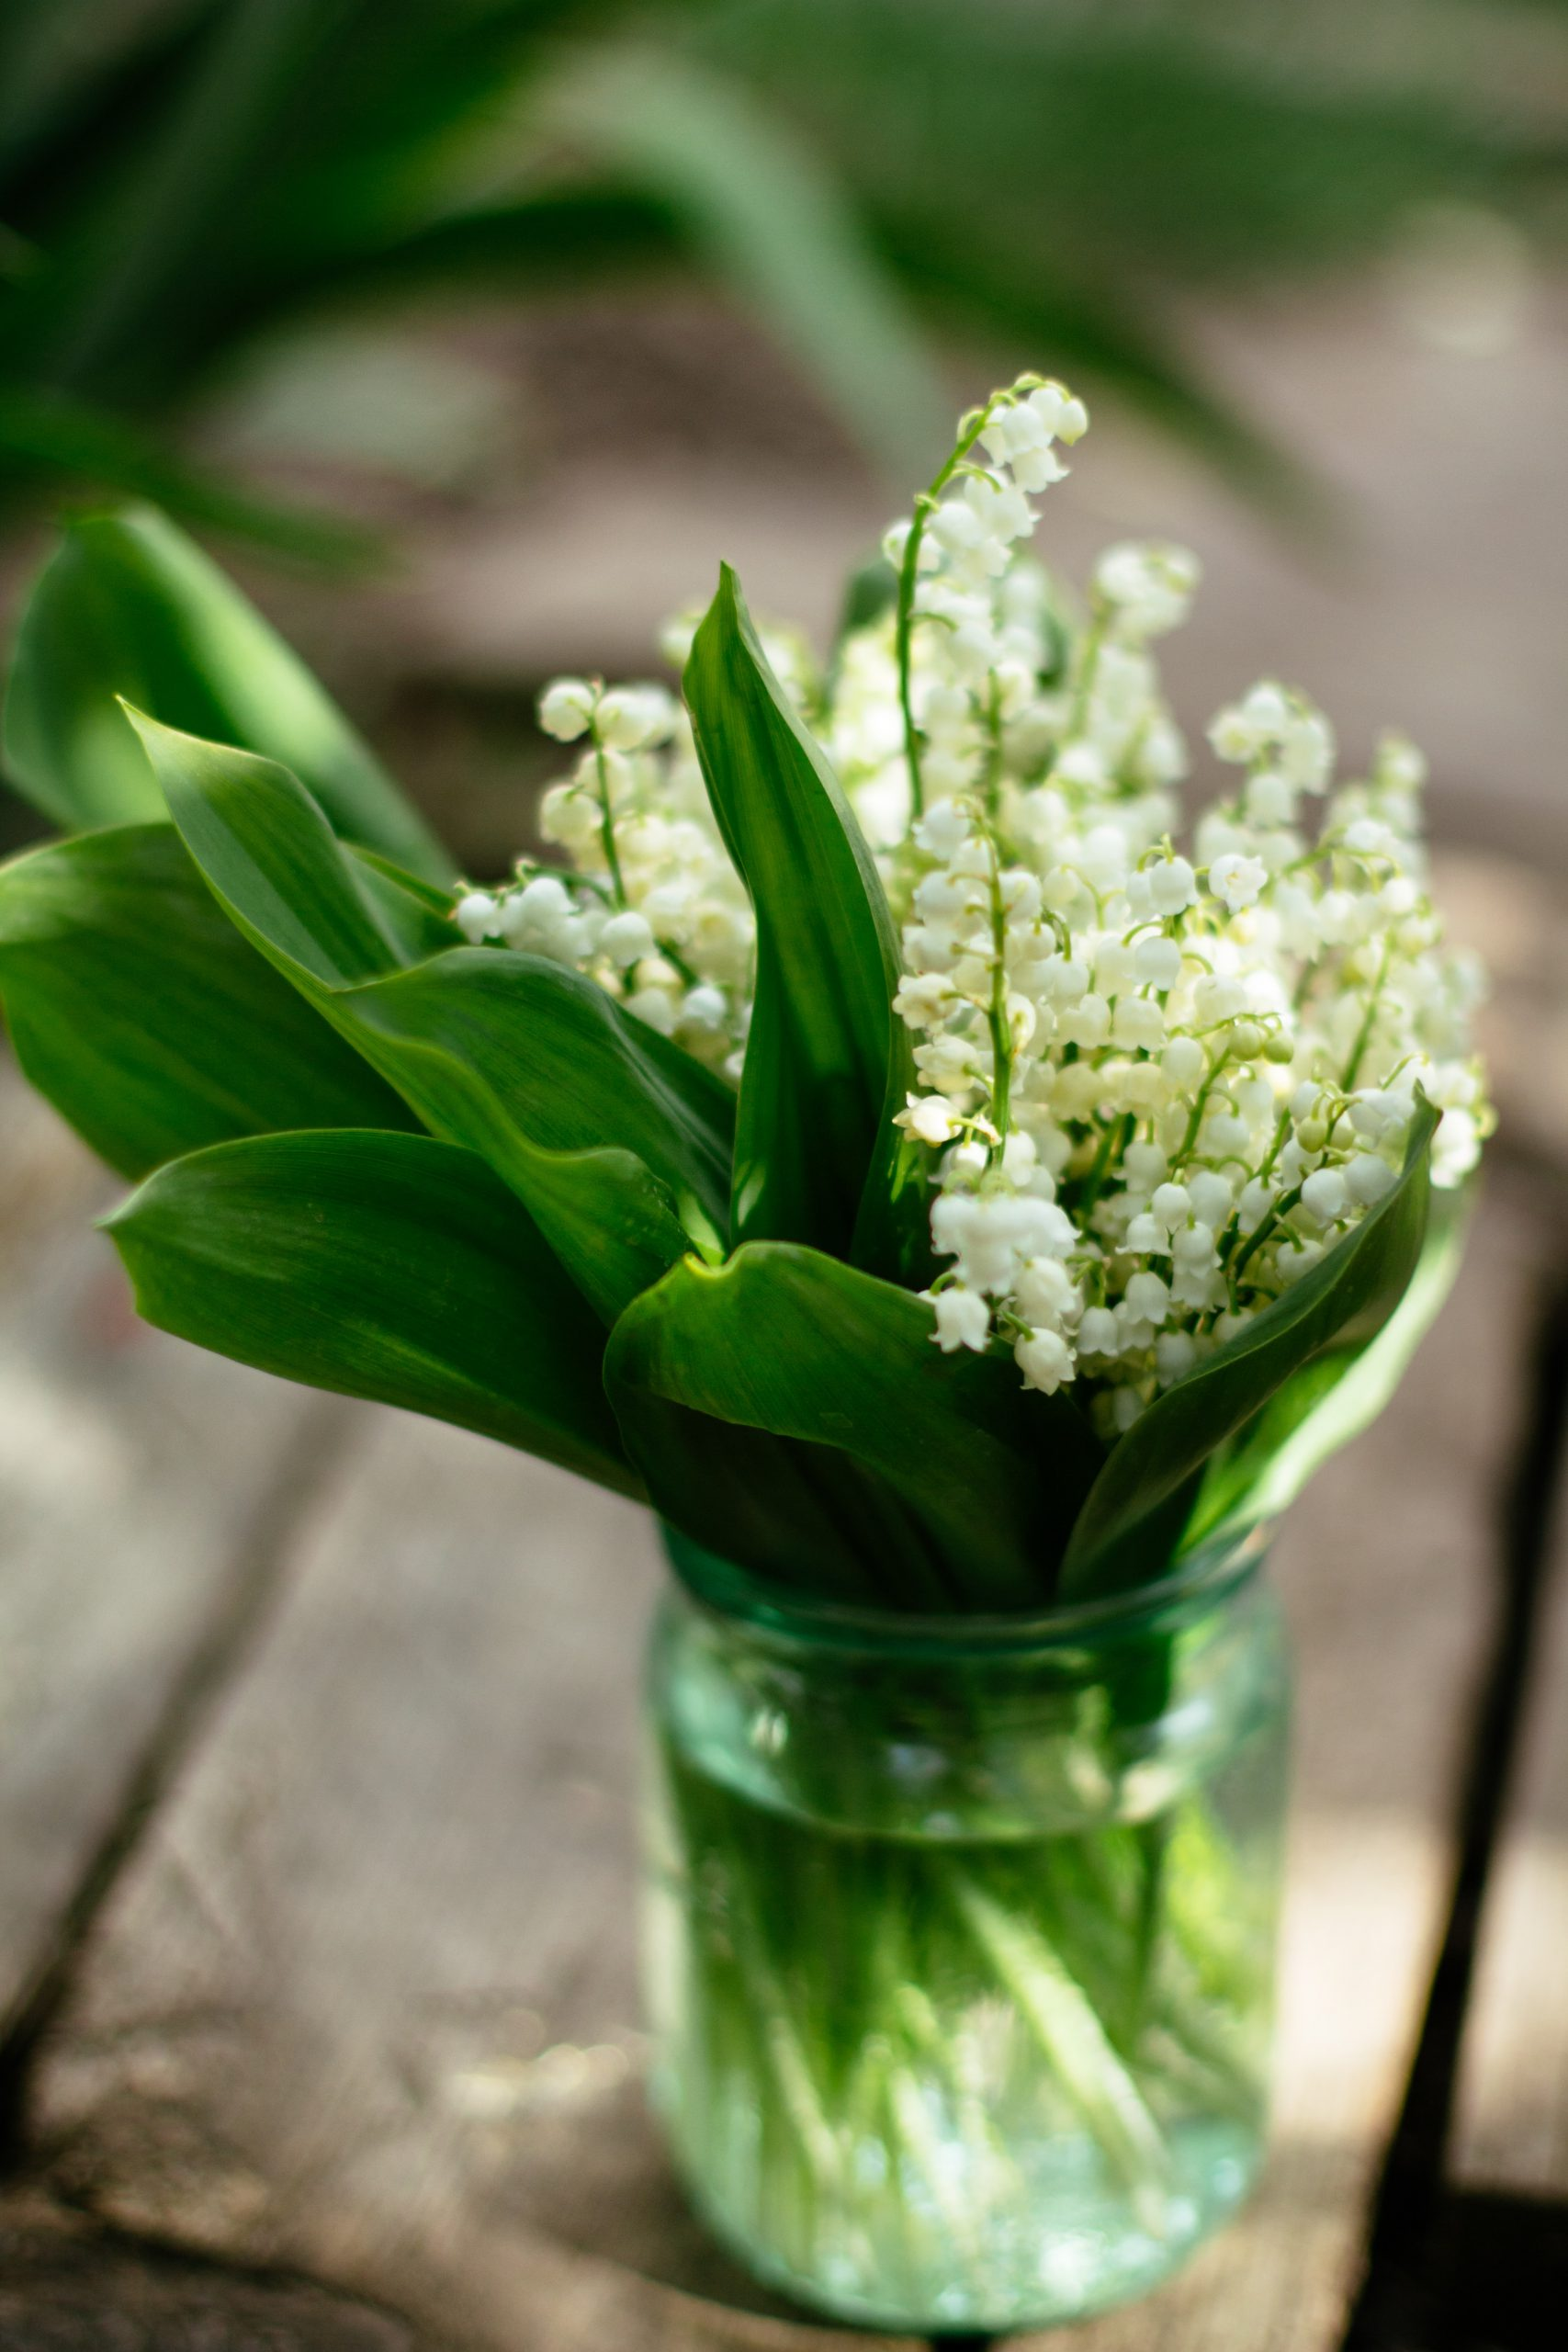 lily of the valley in a vase